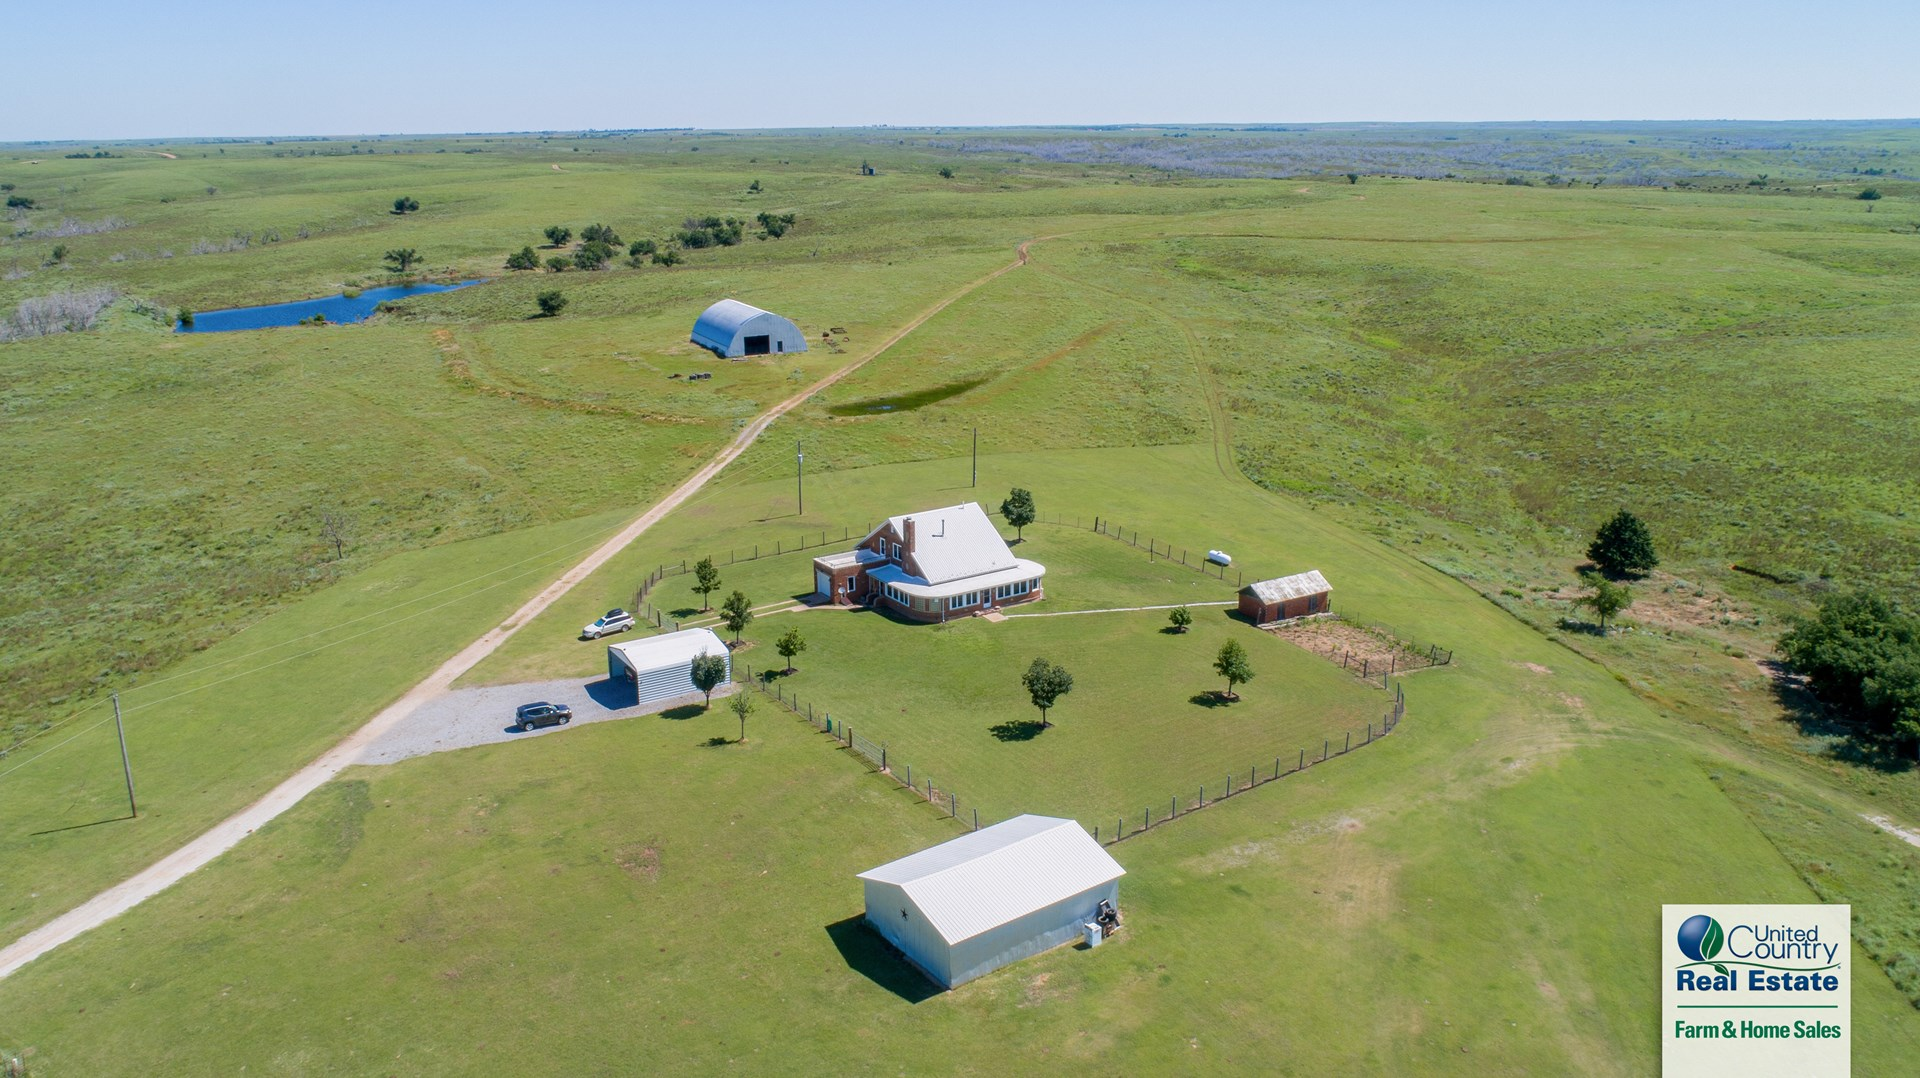 5700Ac Ranch -W/Mineral Rights, Lake City, Barber CO, KS.